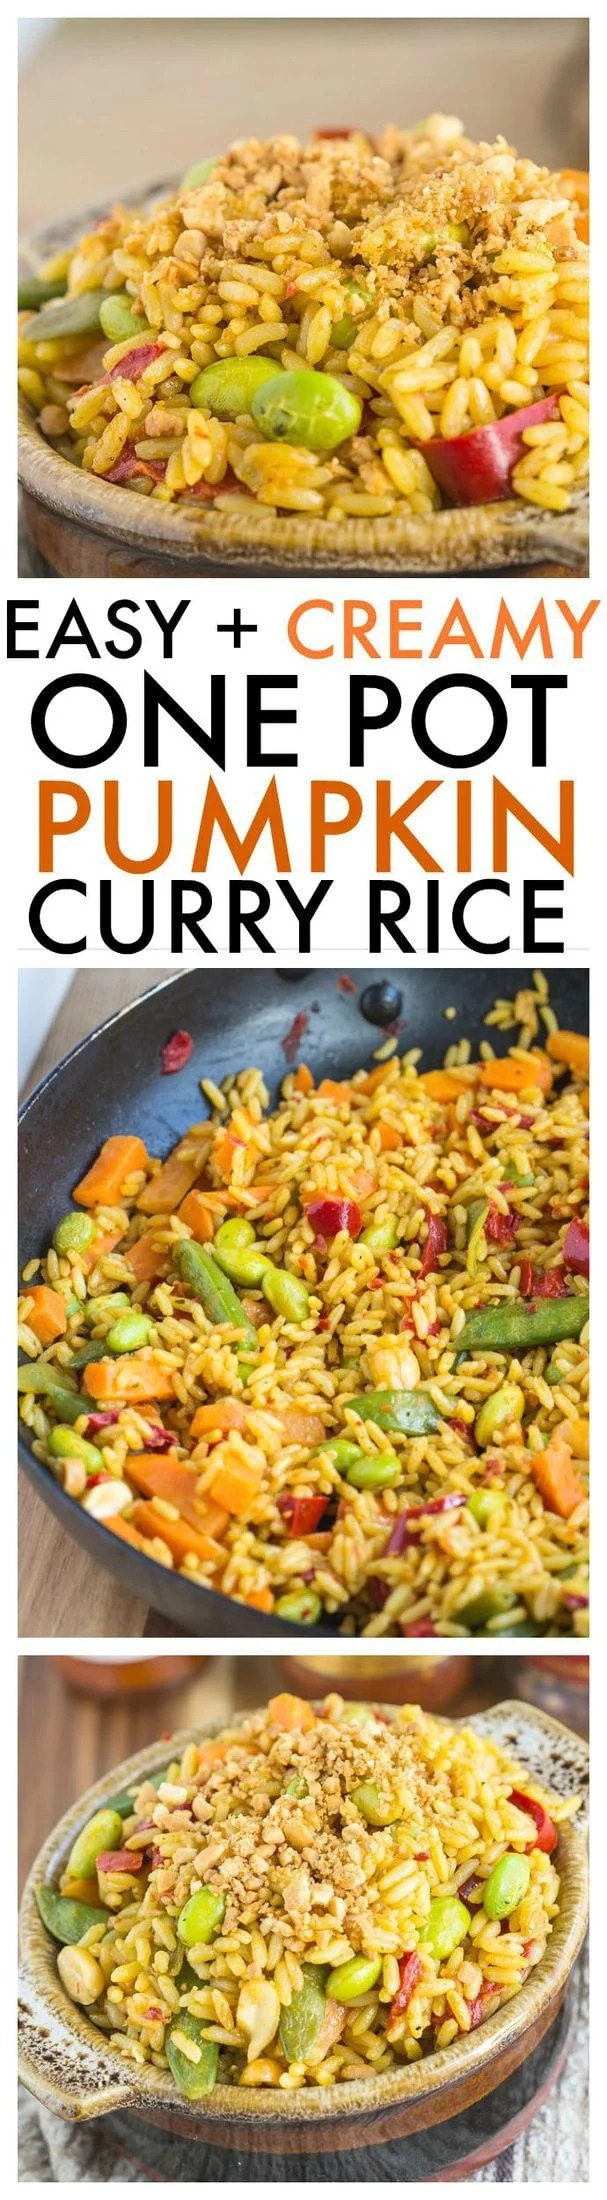 Creamy One Pot Pumpkin Curry Rice- Less than 20 minutes to a healthy bowl of comfort- Quick, easy and delicious, you can enjoy as it is or add some protein to it! {vegan, gluten-free, dairy-free} -thebigmansworld.com